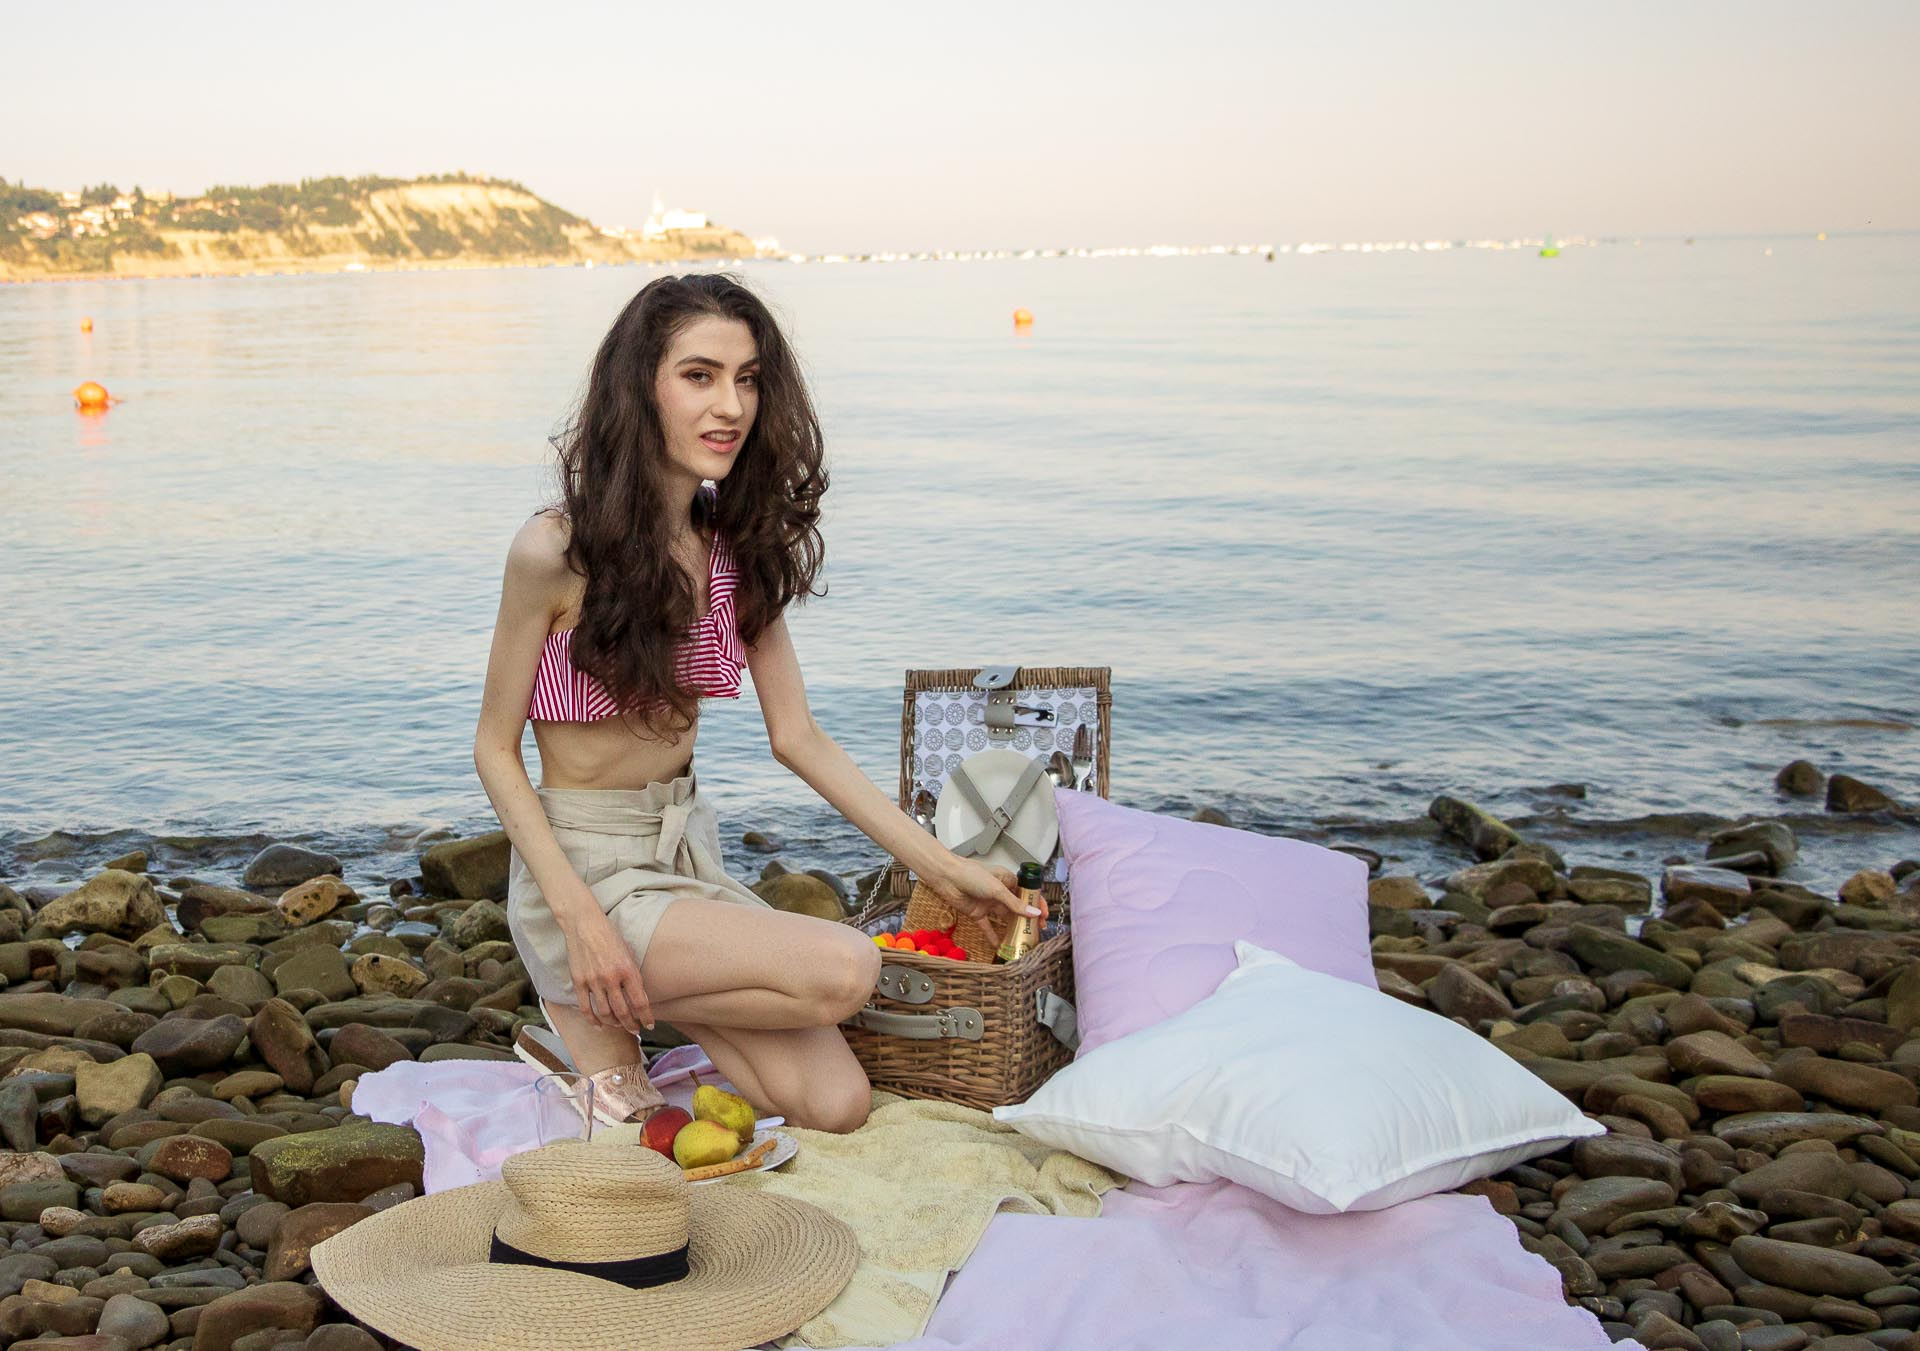 Slovenian Fashion Blogger Veronika Lipar of Brunette from Wall wearing beige linen crop top, paper bag linen shorts, luxe pool slides, large straw hat, Nannacay basket bag while taking picnic food out of the picnic basket